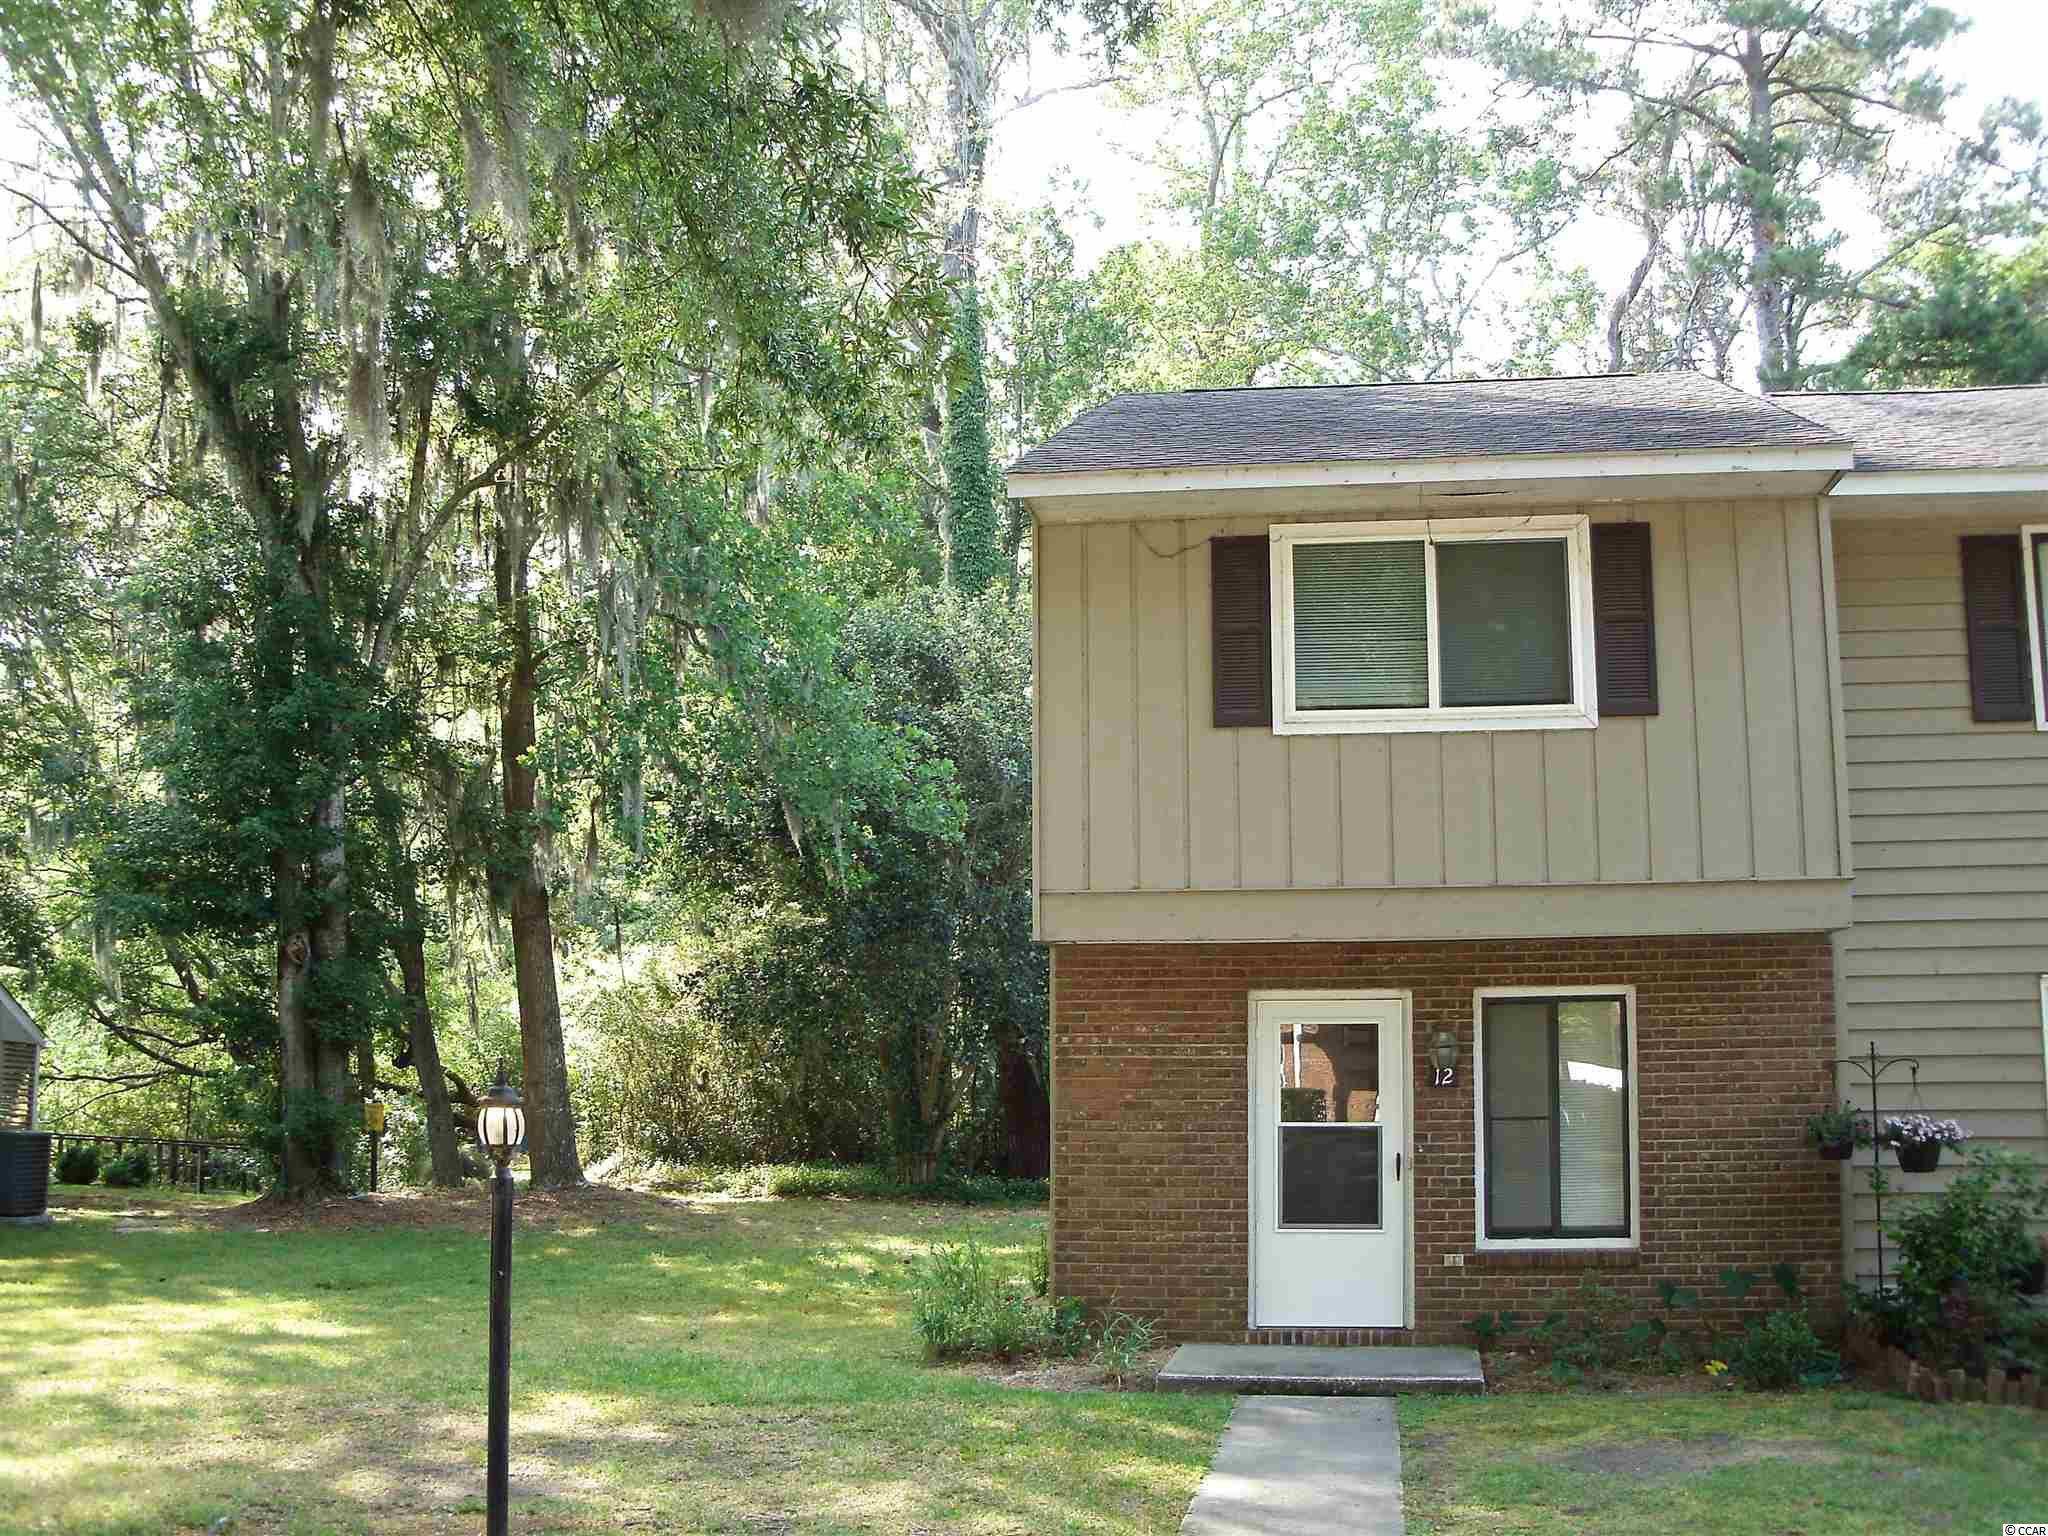 Only 3 miles from the ocean! Great second or primary home. Townhouse-style condo boasts end position with long view over lovely, woodland-edged pond. Two-story layout offers common areas on the ground level including powder room, fireplace and enclosed all-season porch. Top floor has two bedrooms and a full bath. Utility room/closet is available for washer and dryer. Great central location with direct access to the county bike path. Convenient to medical facilities, schools, shopping, golf courses and restaurants.